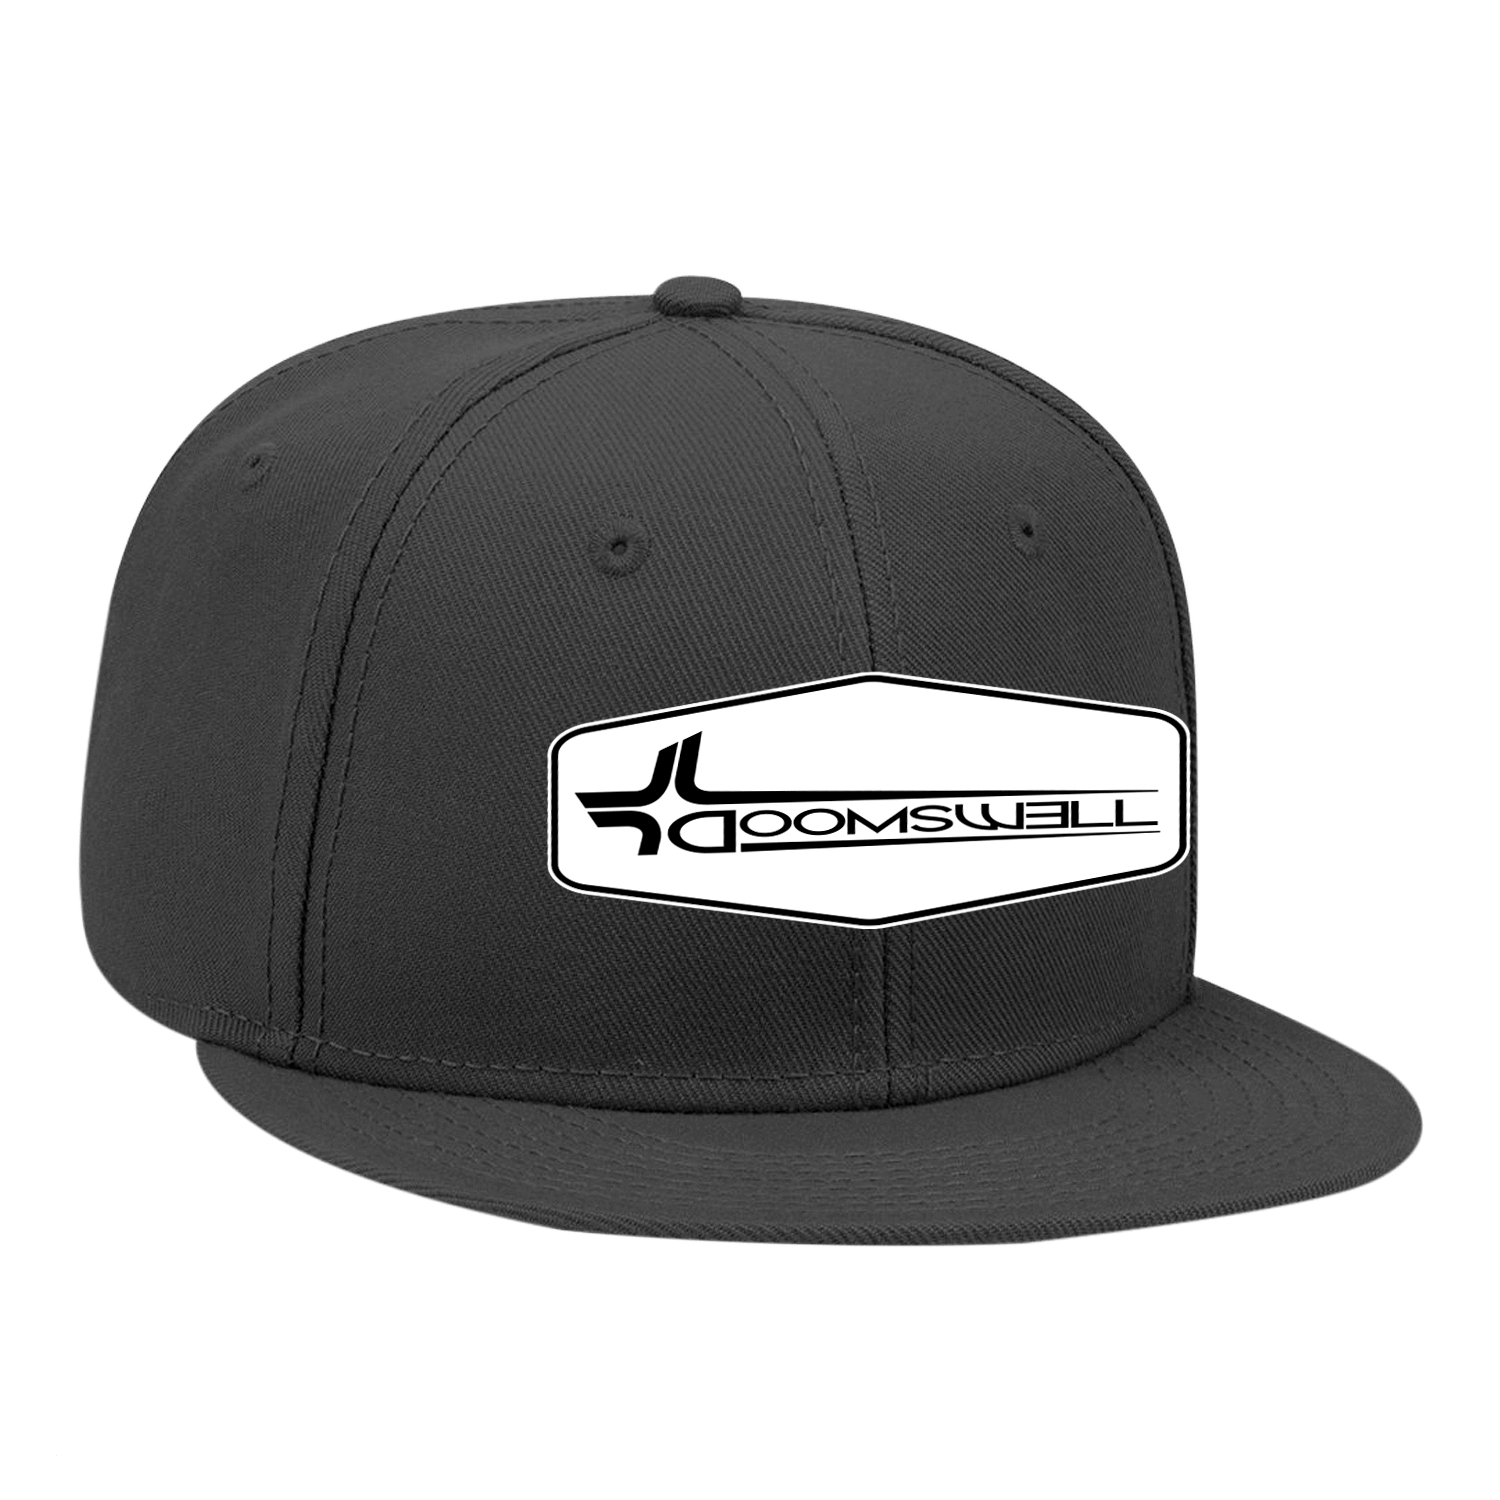 Doomswell Boarding Co. Hats Black OG Hat-Black